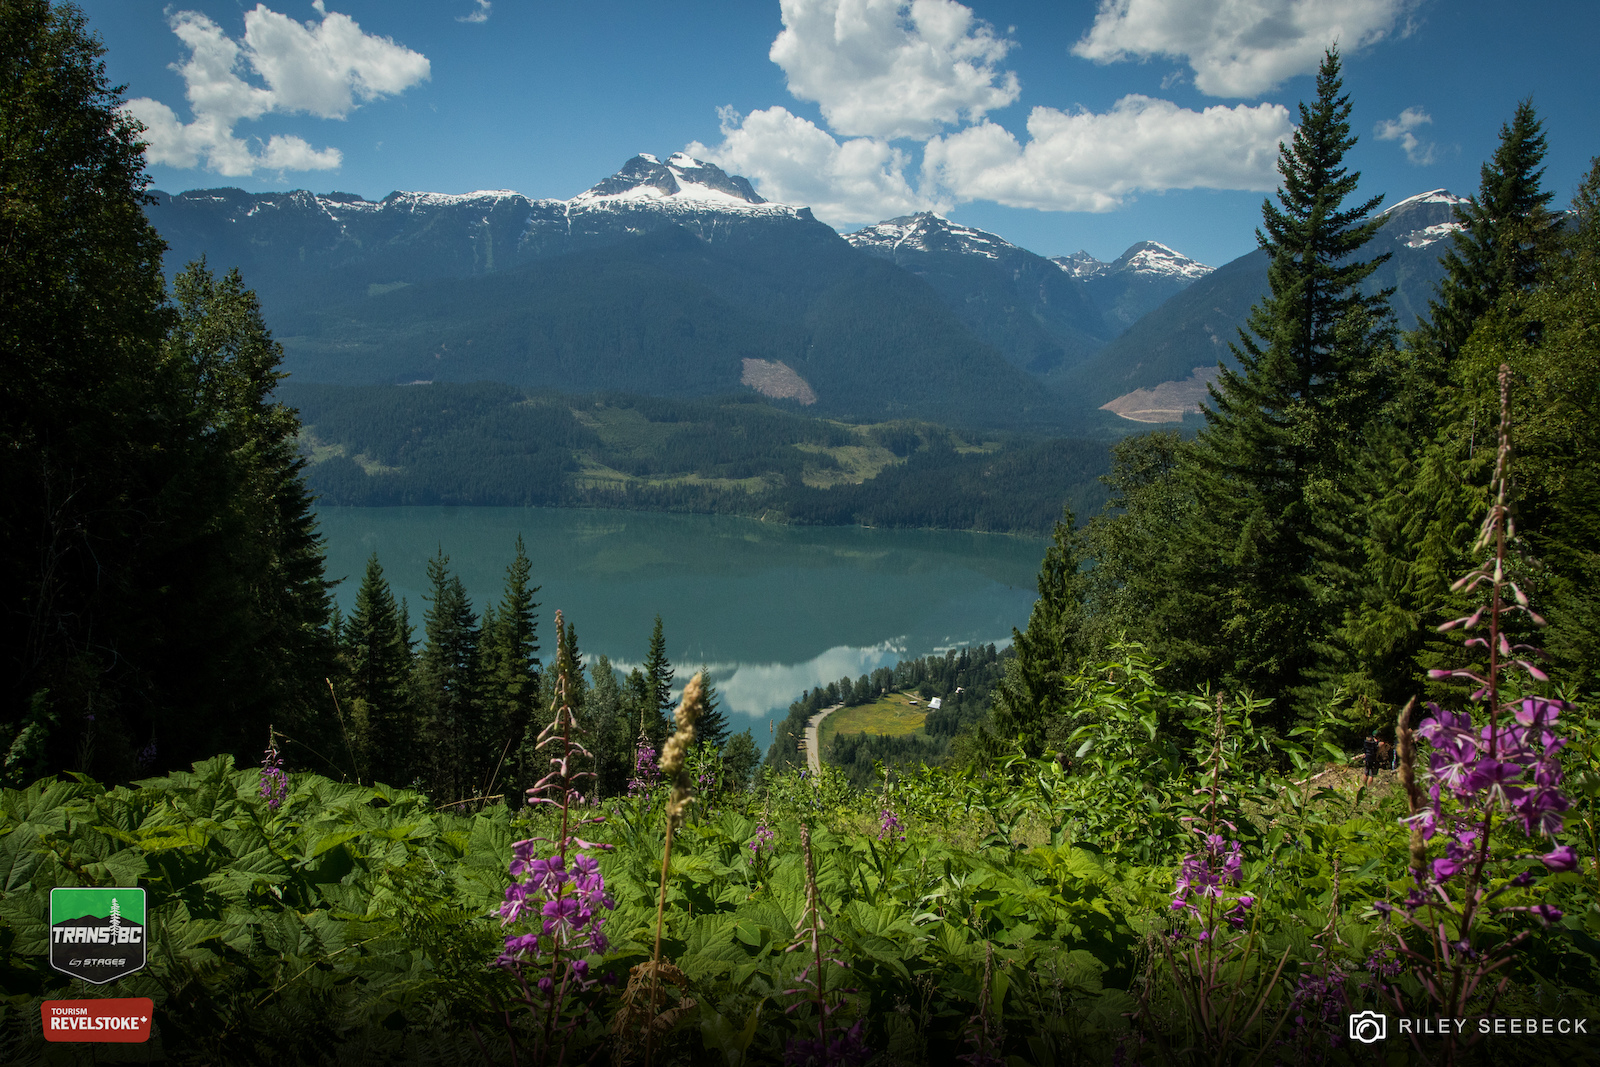 Revelstoke has views for a lifetime